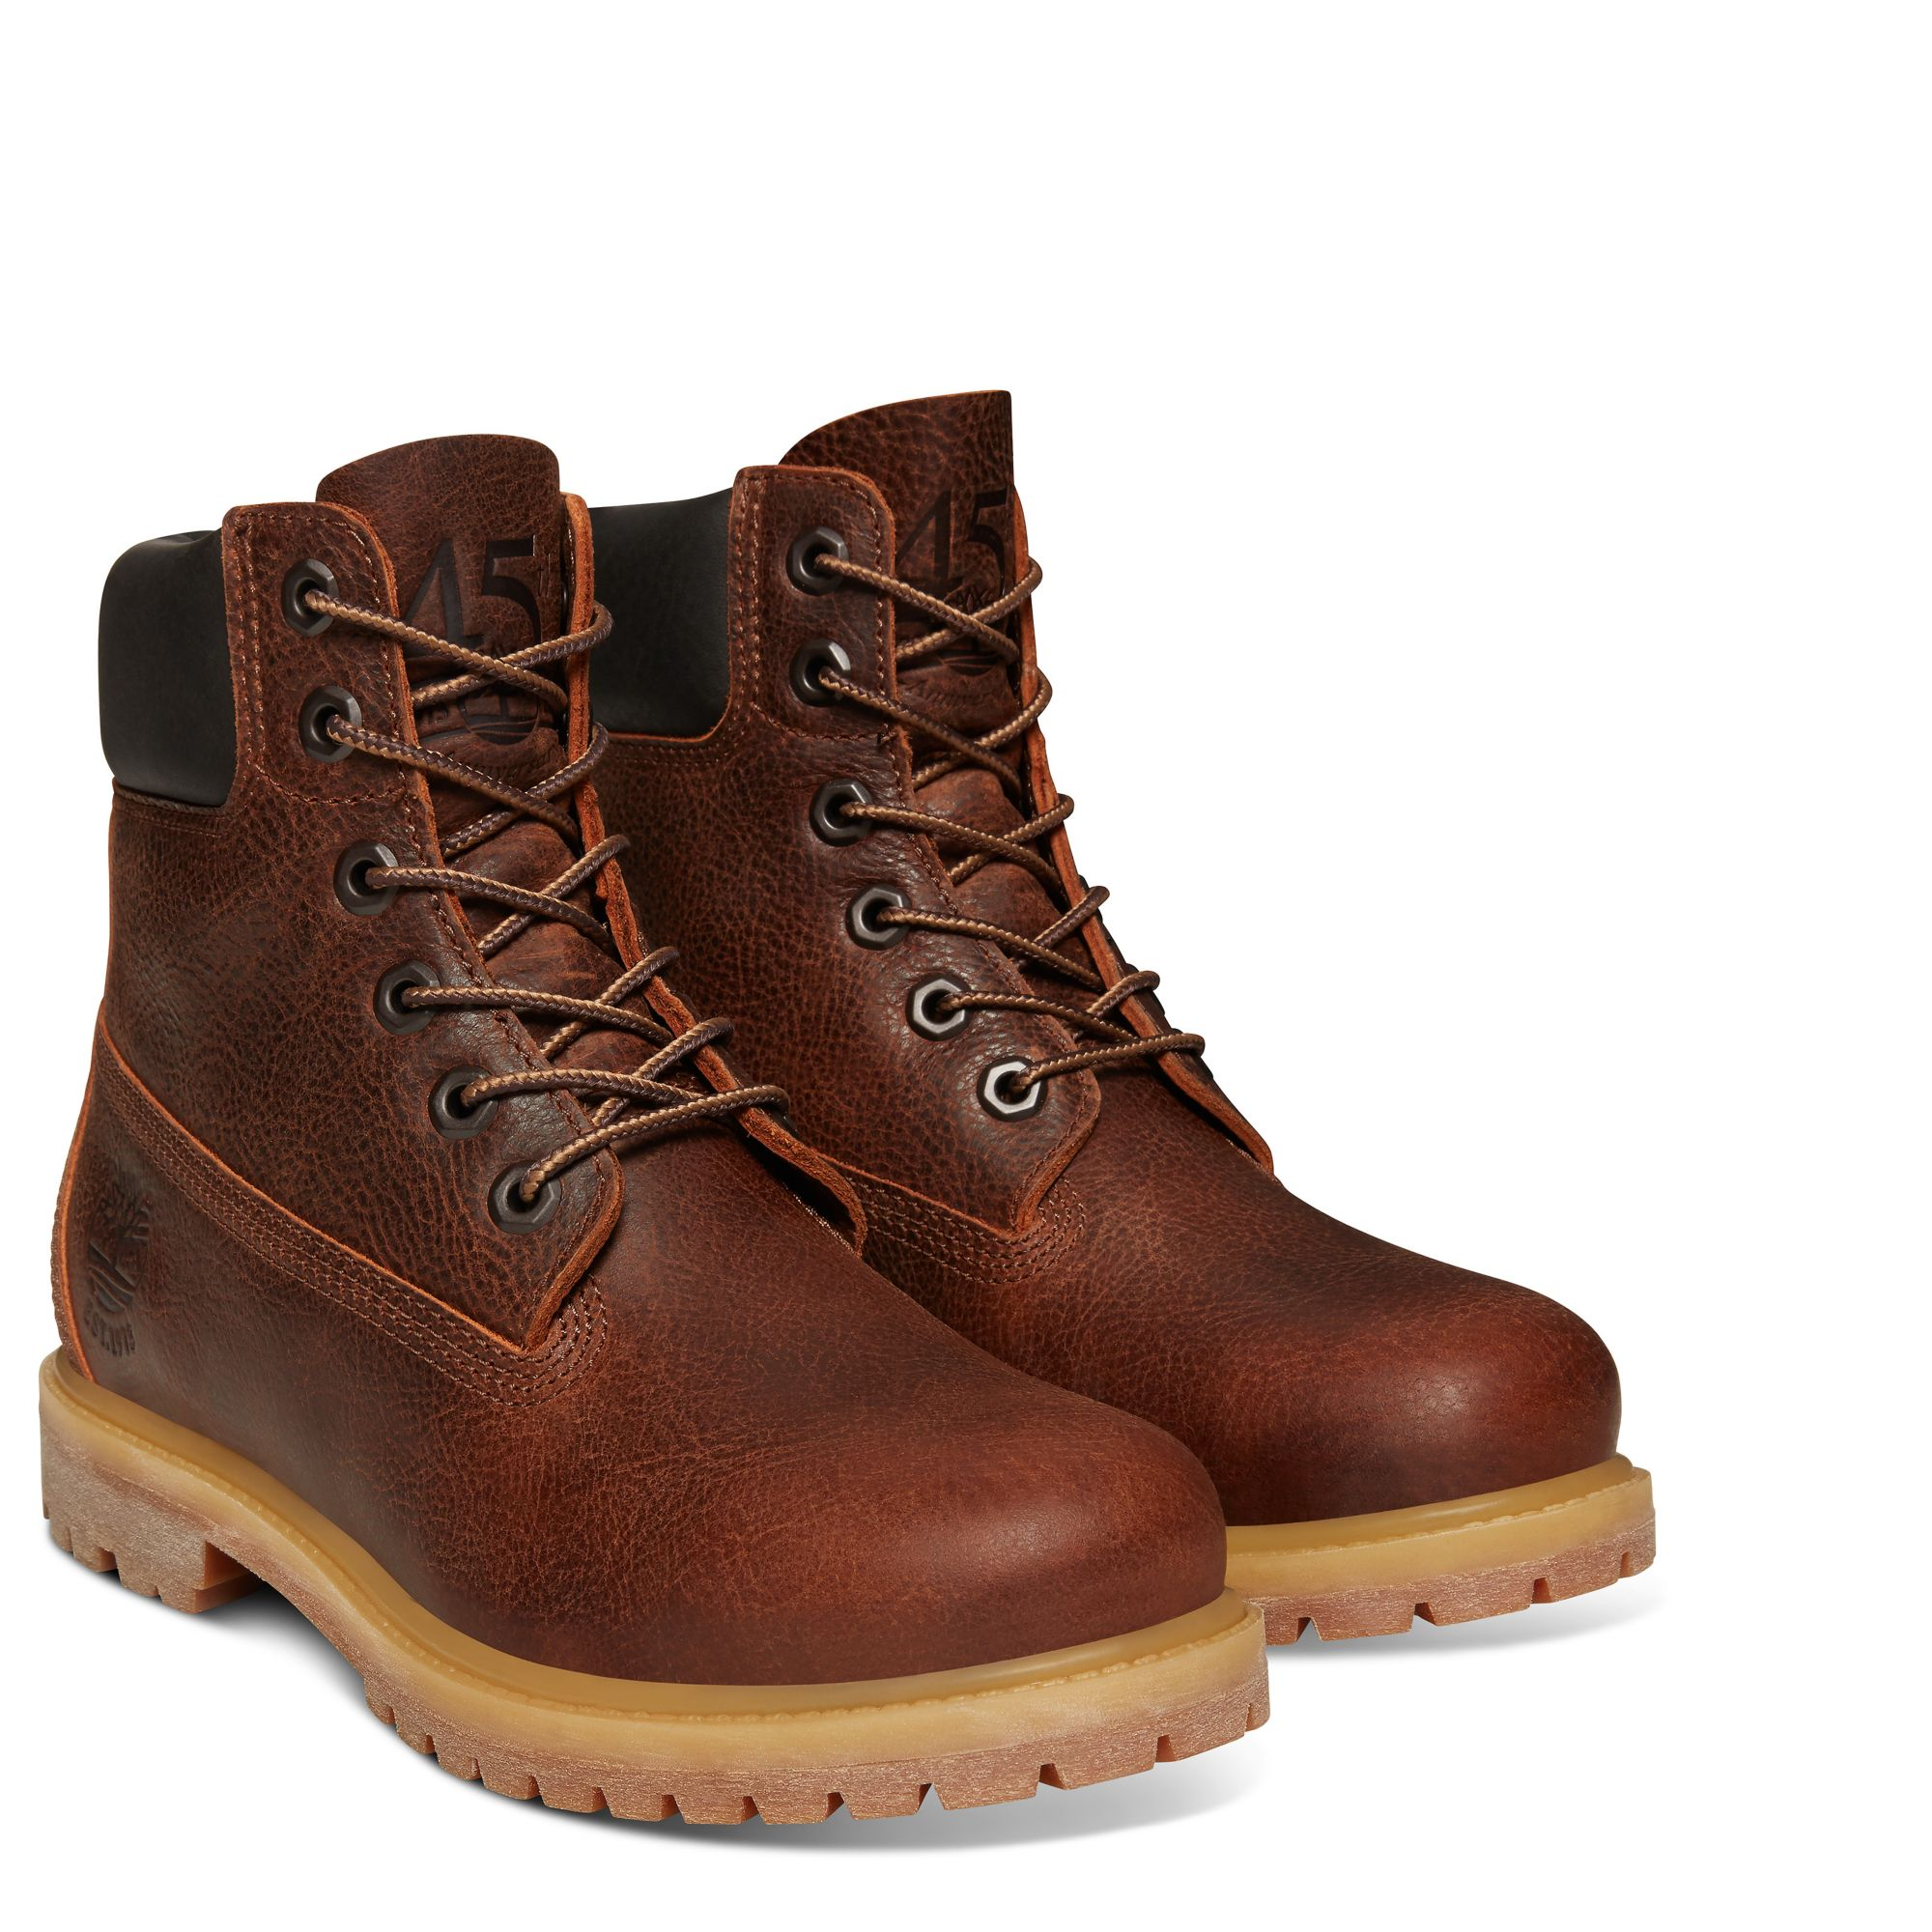 45th Timberland Brown In Inch Women Boot For 6 Anniversary BhQdotxrCs